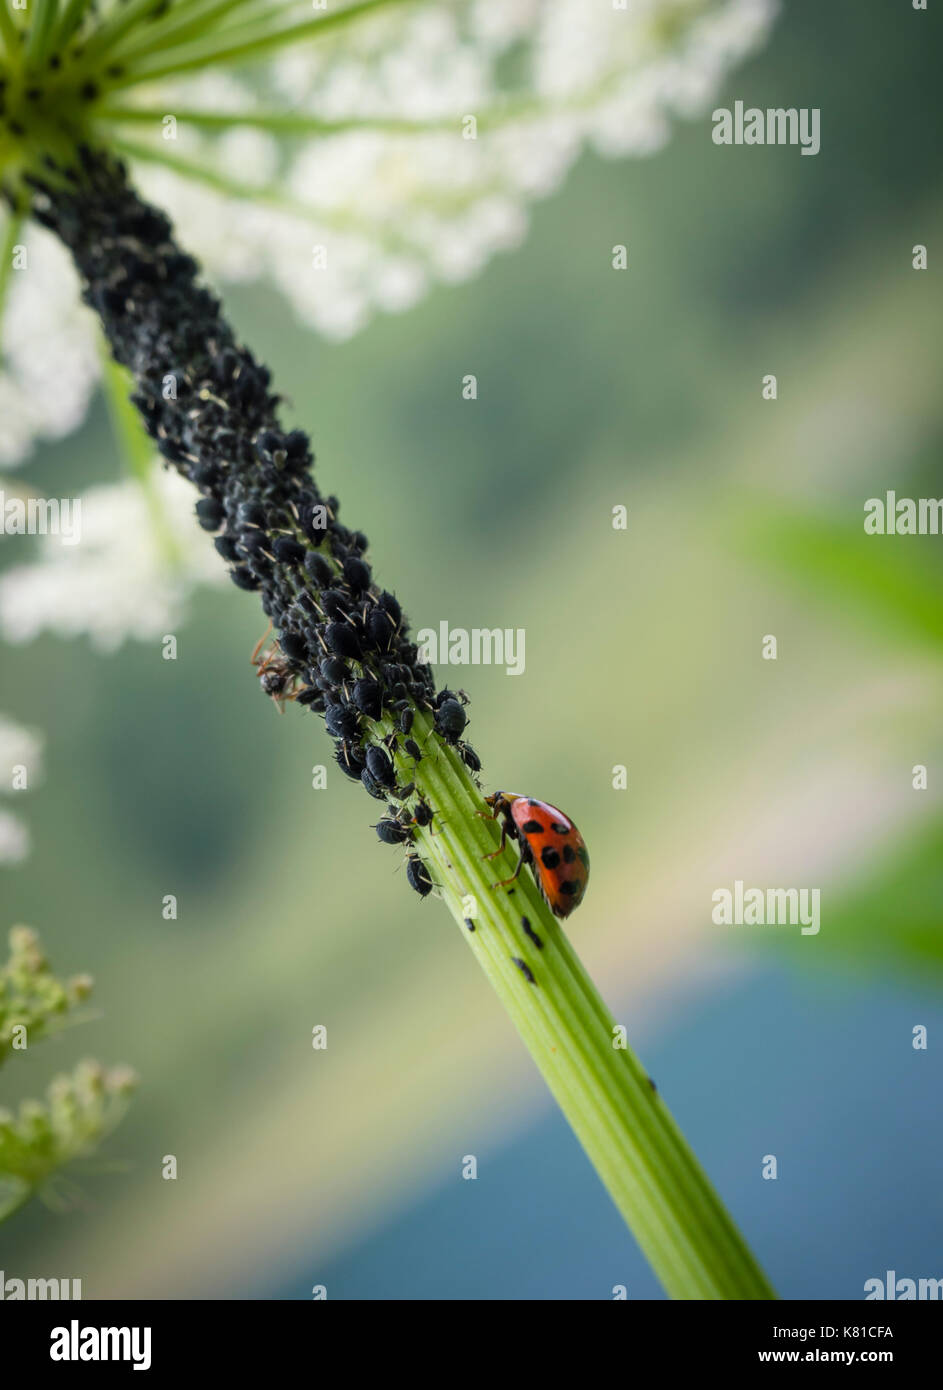 A ladybug (Coccinella septempunctata) in the midst of many plant louses (Aphidoidea). Ladybugs are considered useful Stock Photo